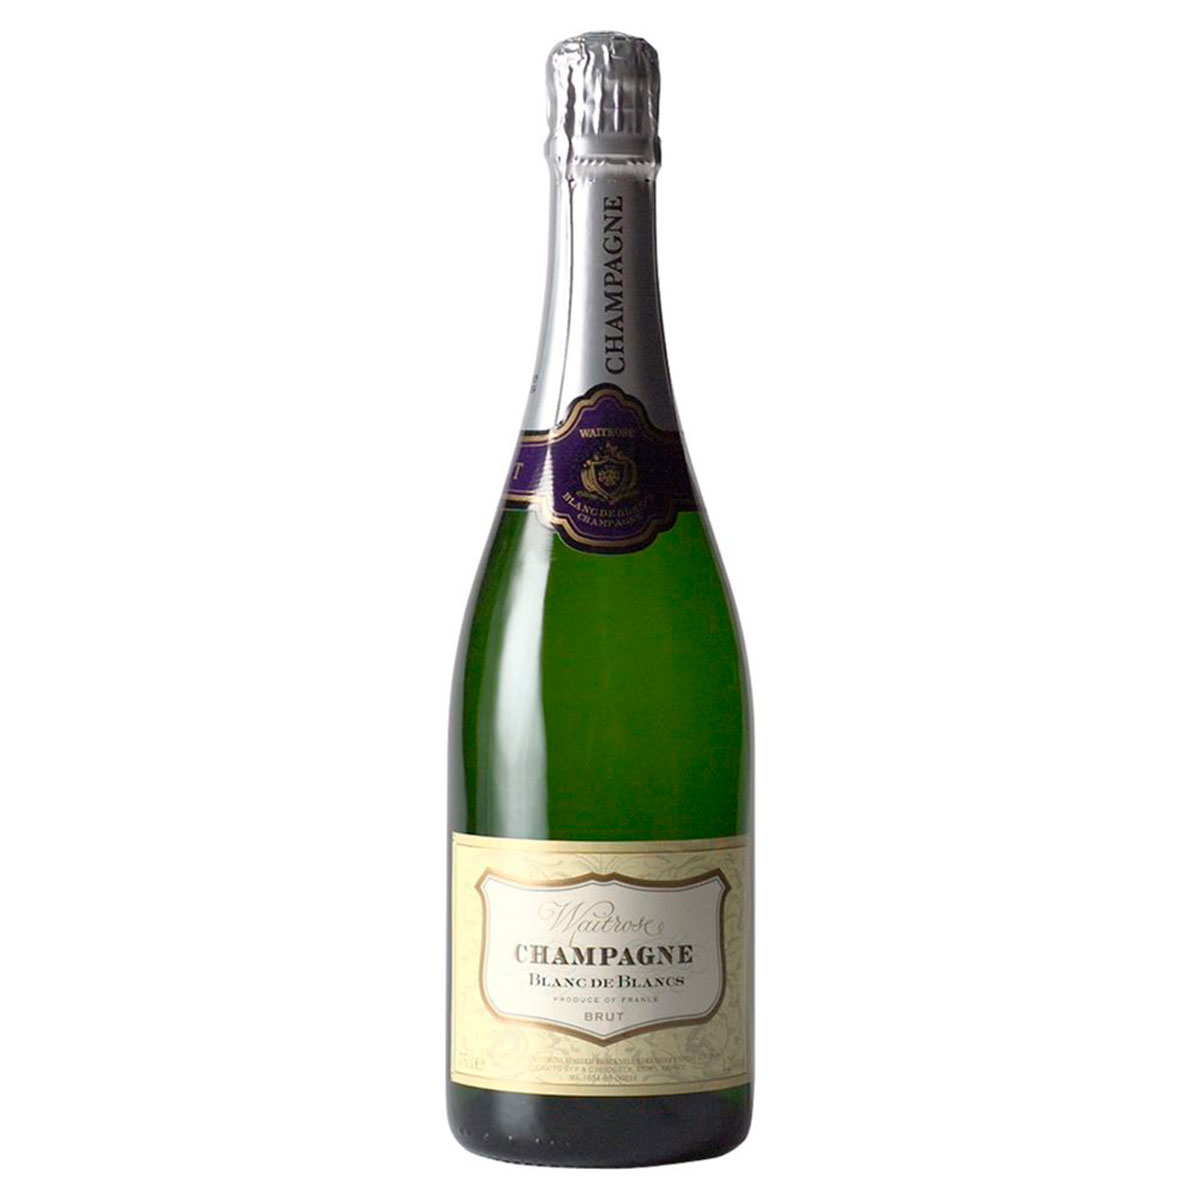 Waitrose Blanc de Blancs came top in Good House Keeping's budget champagne guide for 2014